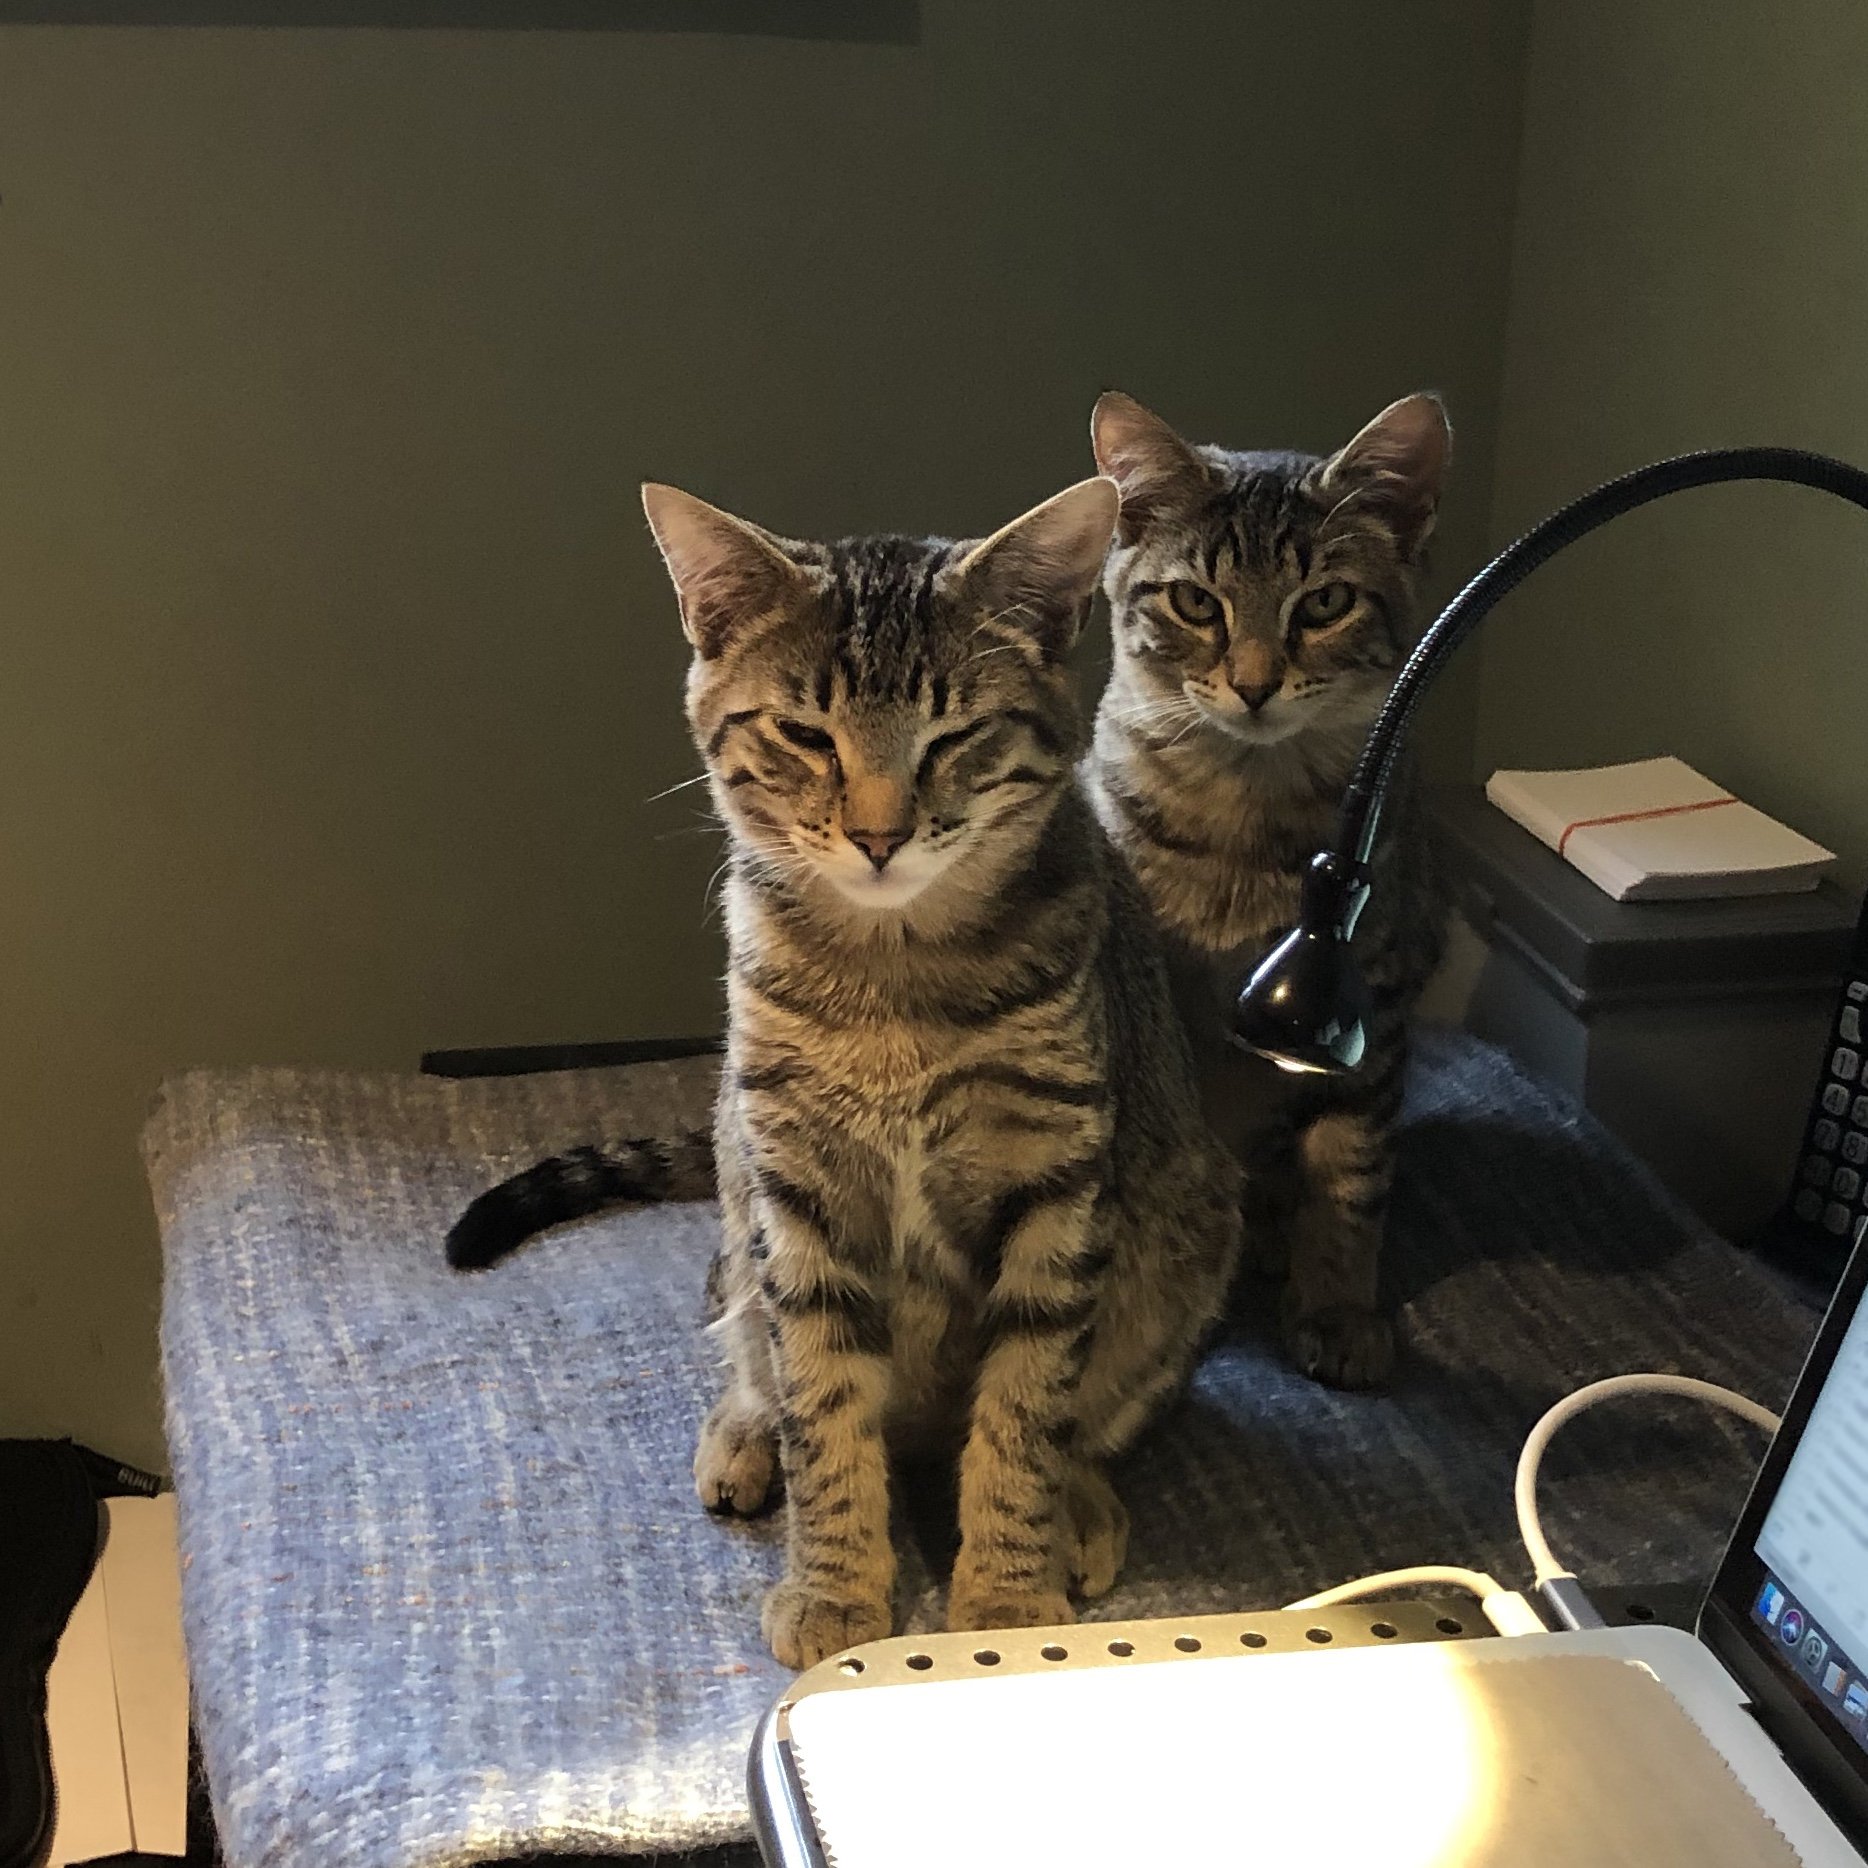 Two tabby cats sitting up after a nap on a woven throw next to a laptop.